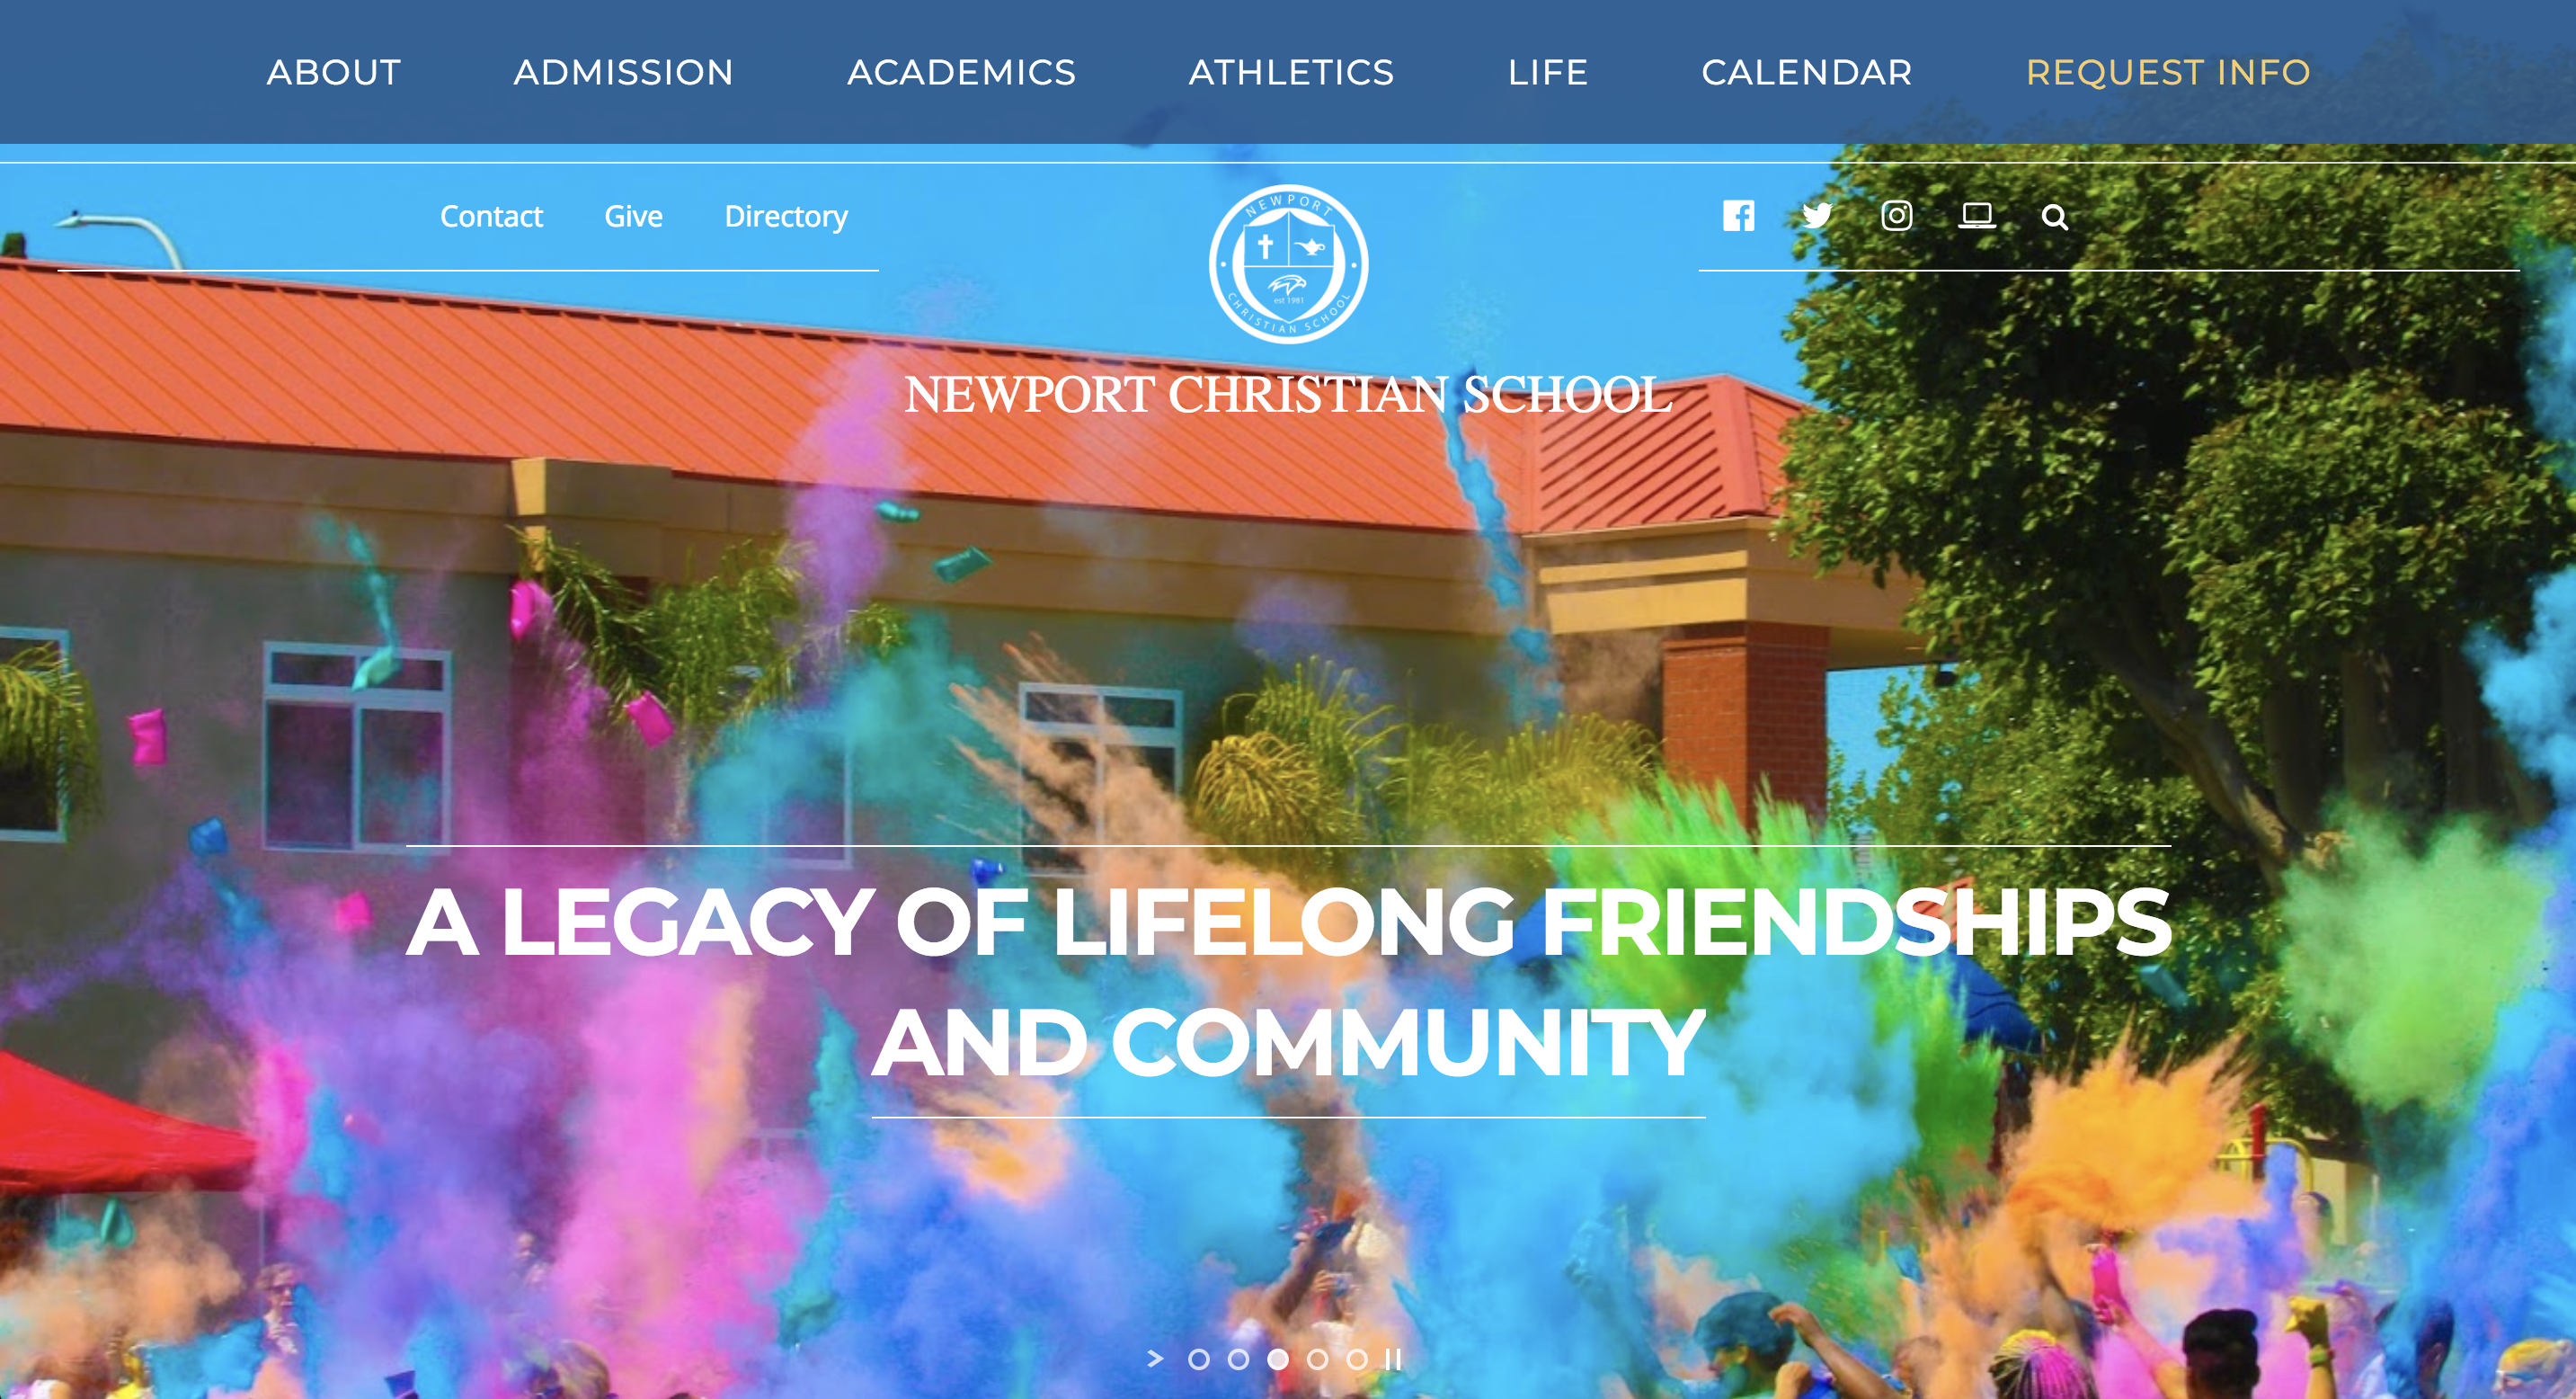 Web Design Client - Newport Christian School